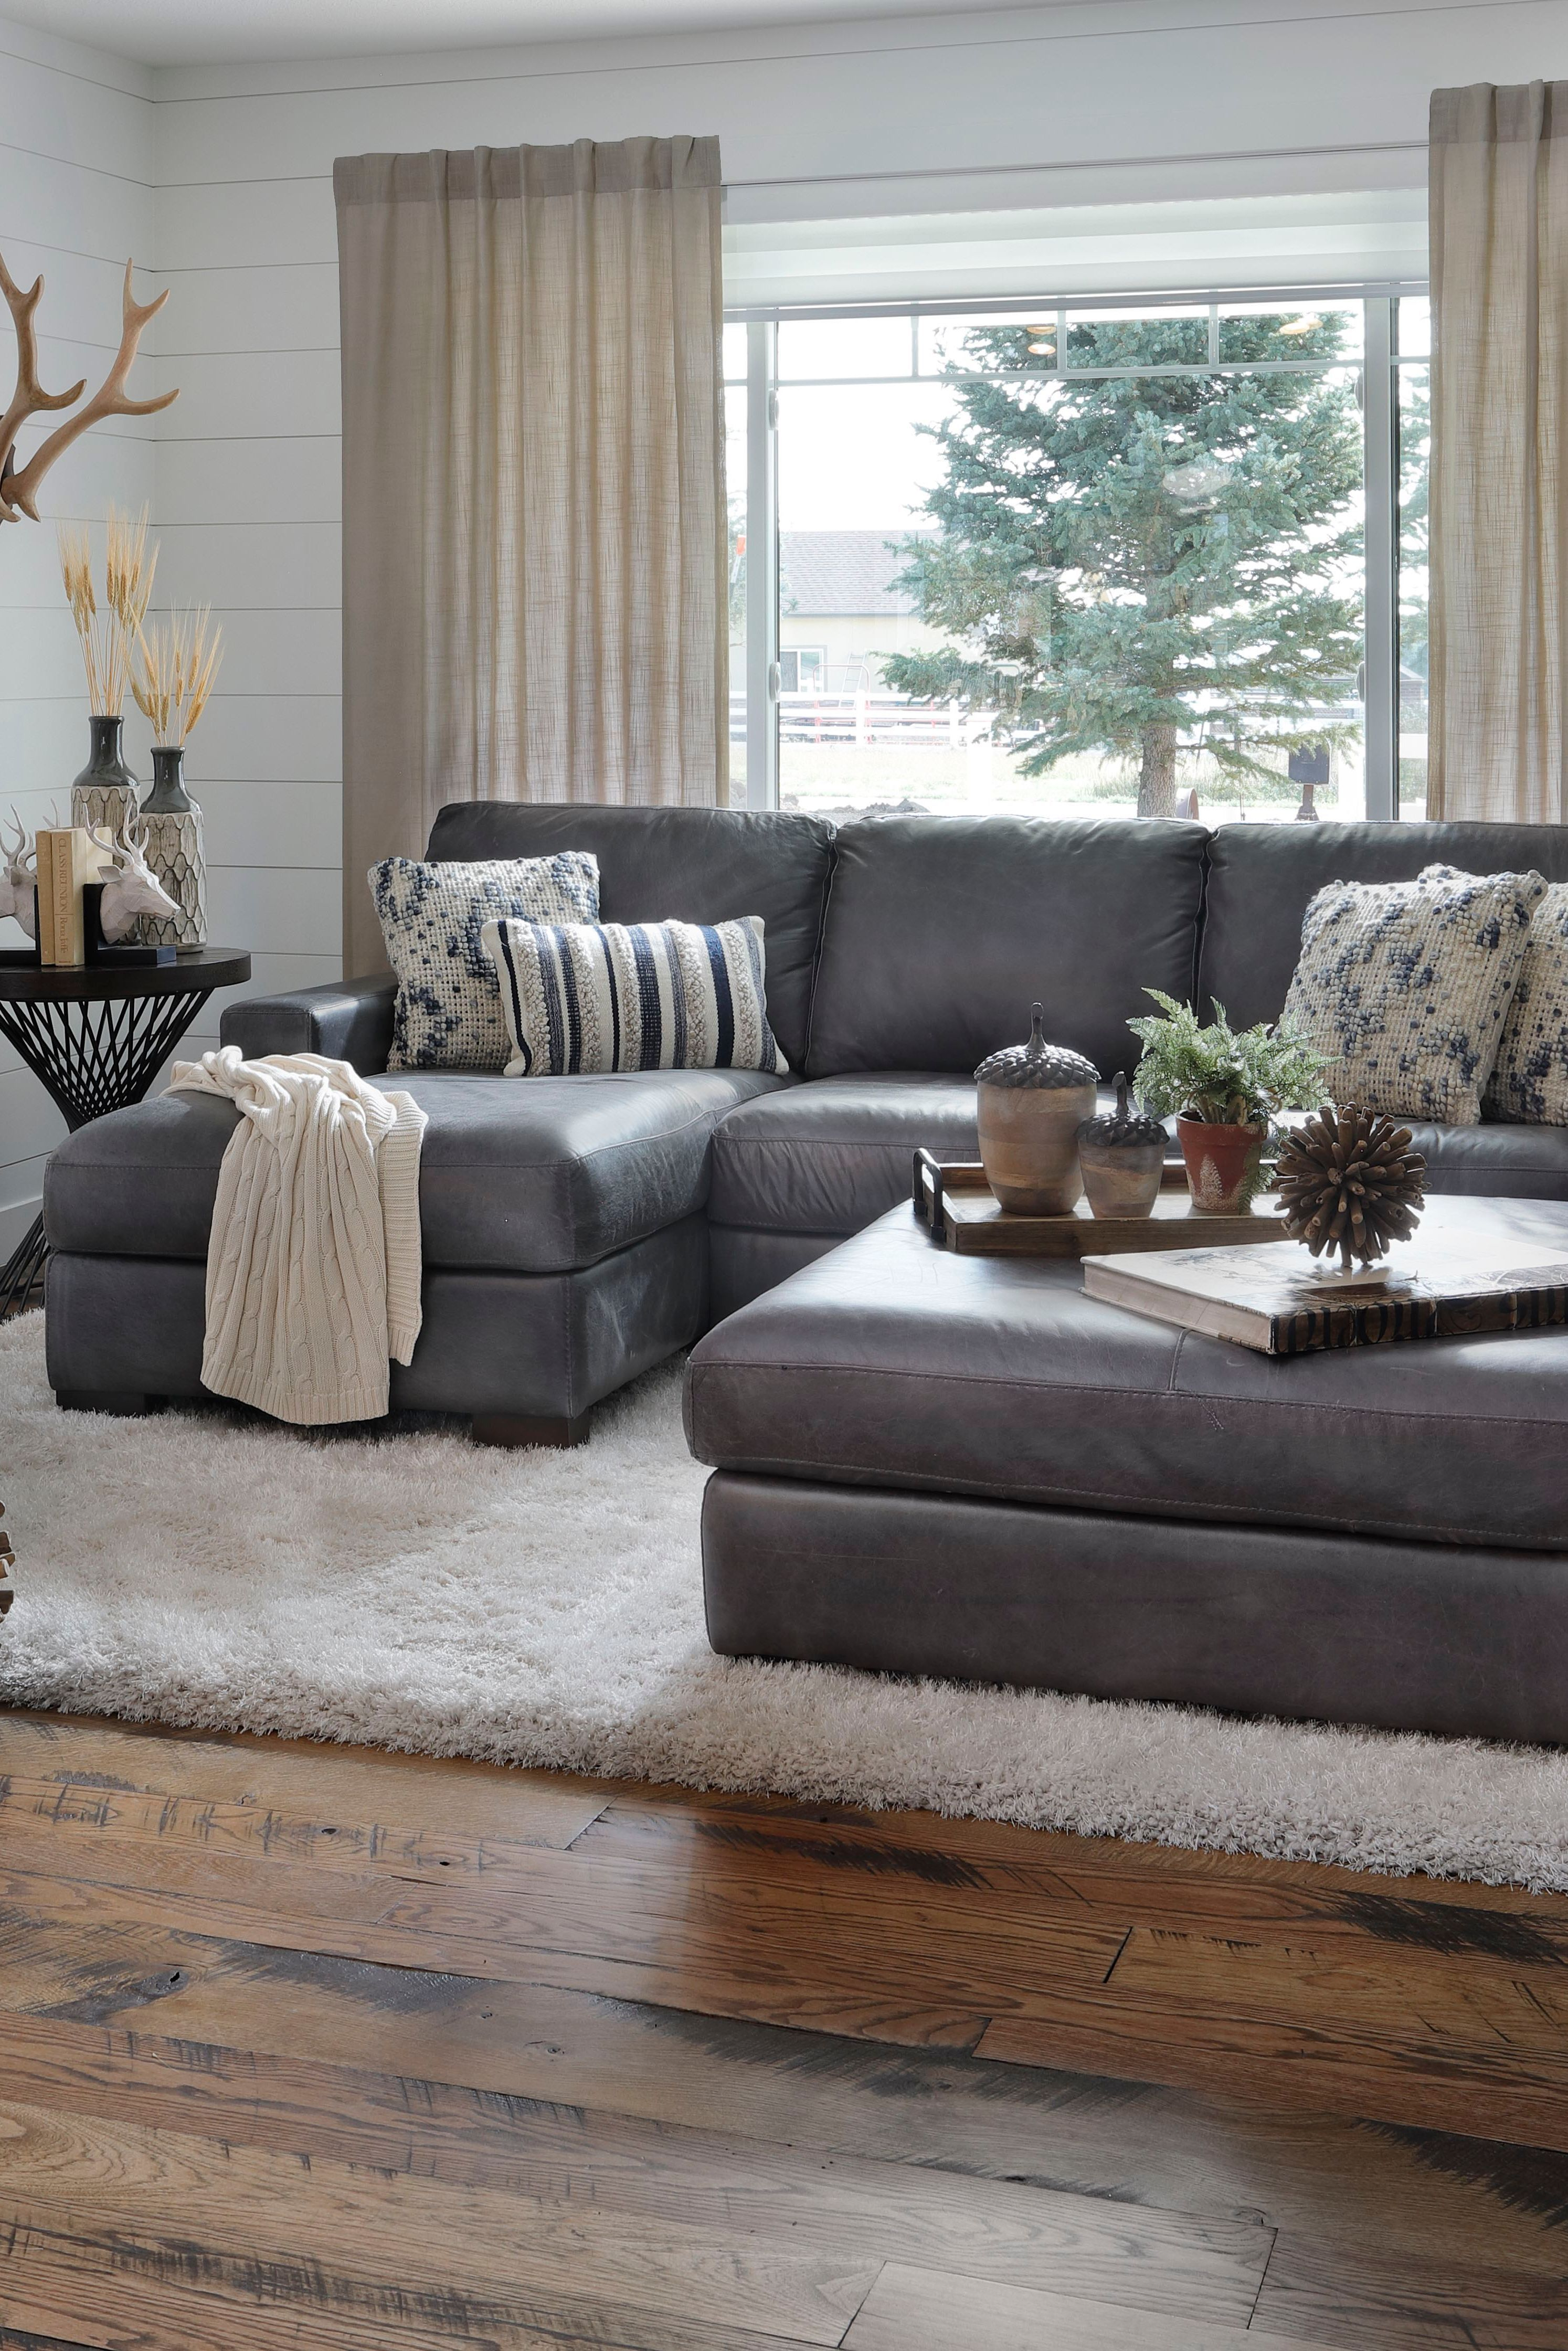 Durango 2 Pc Chaise Sectional Durango 2 Pc Chaise Sectional Is An In 2020 Grey Leather Sofa Living Room Dark Grey Couch Living Room Leather Sectional Living Room